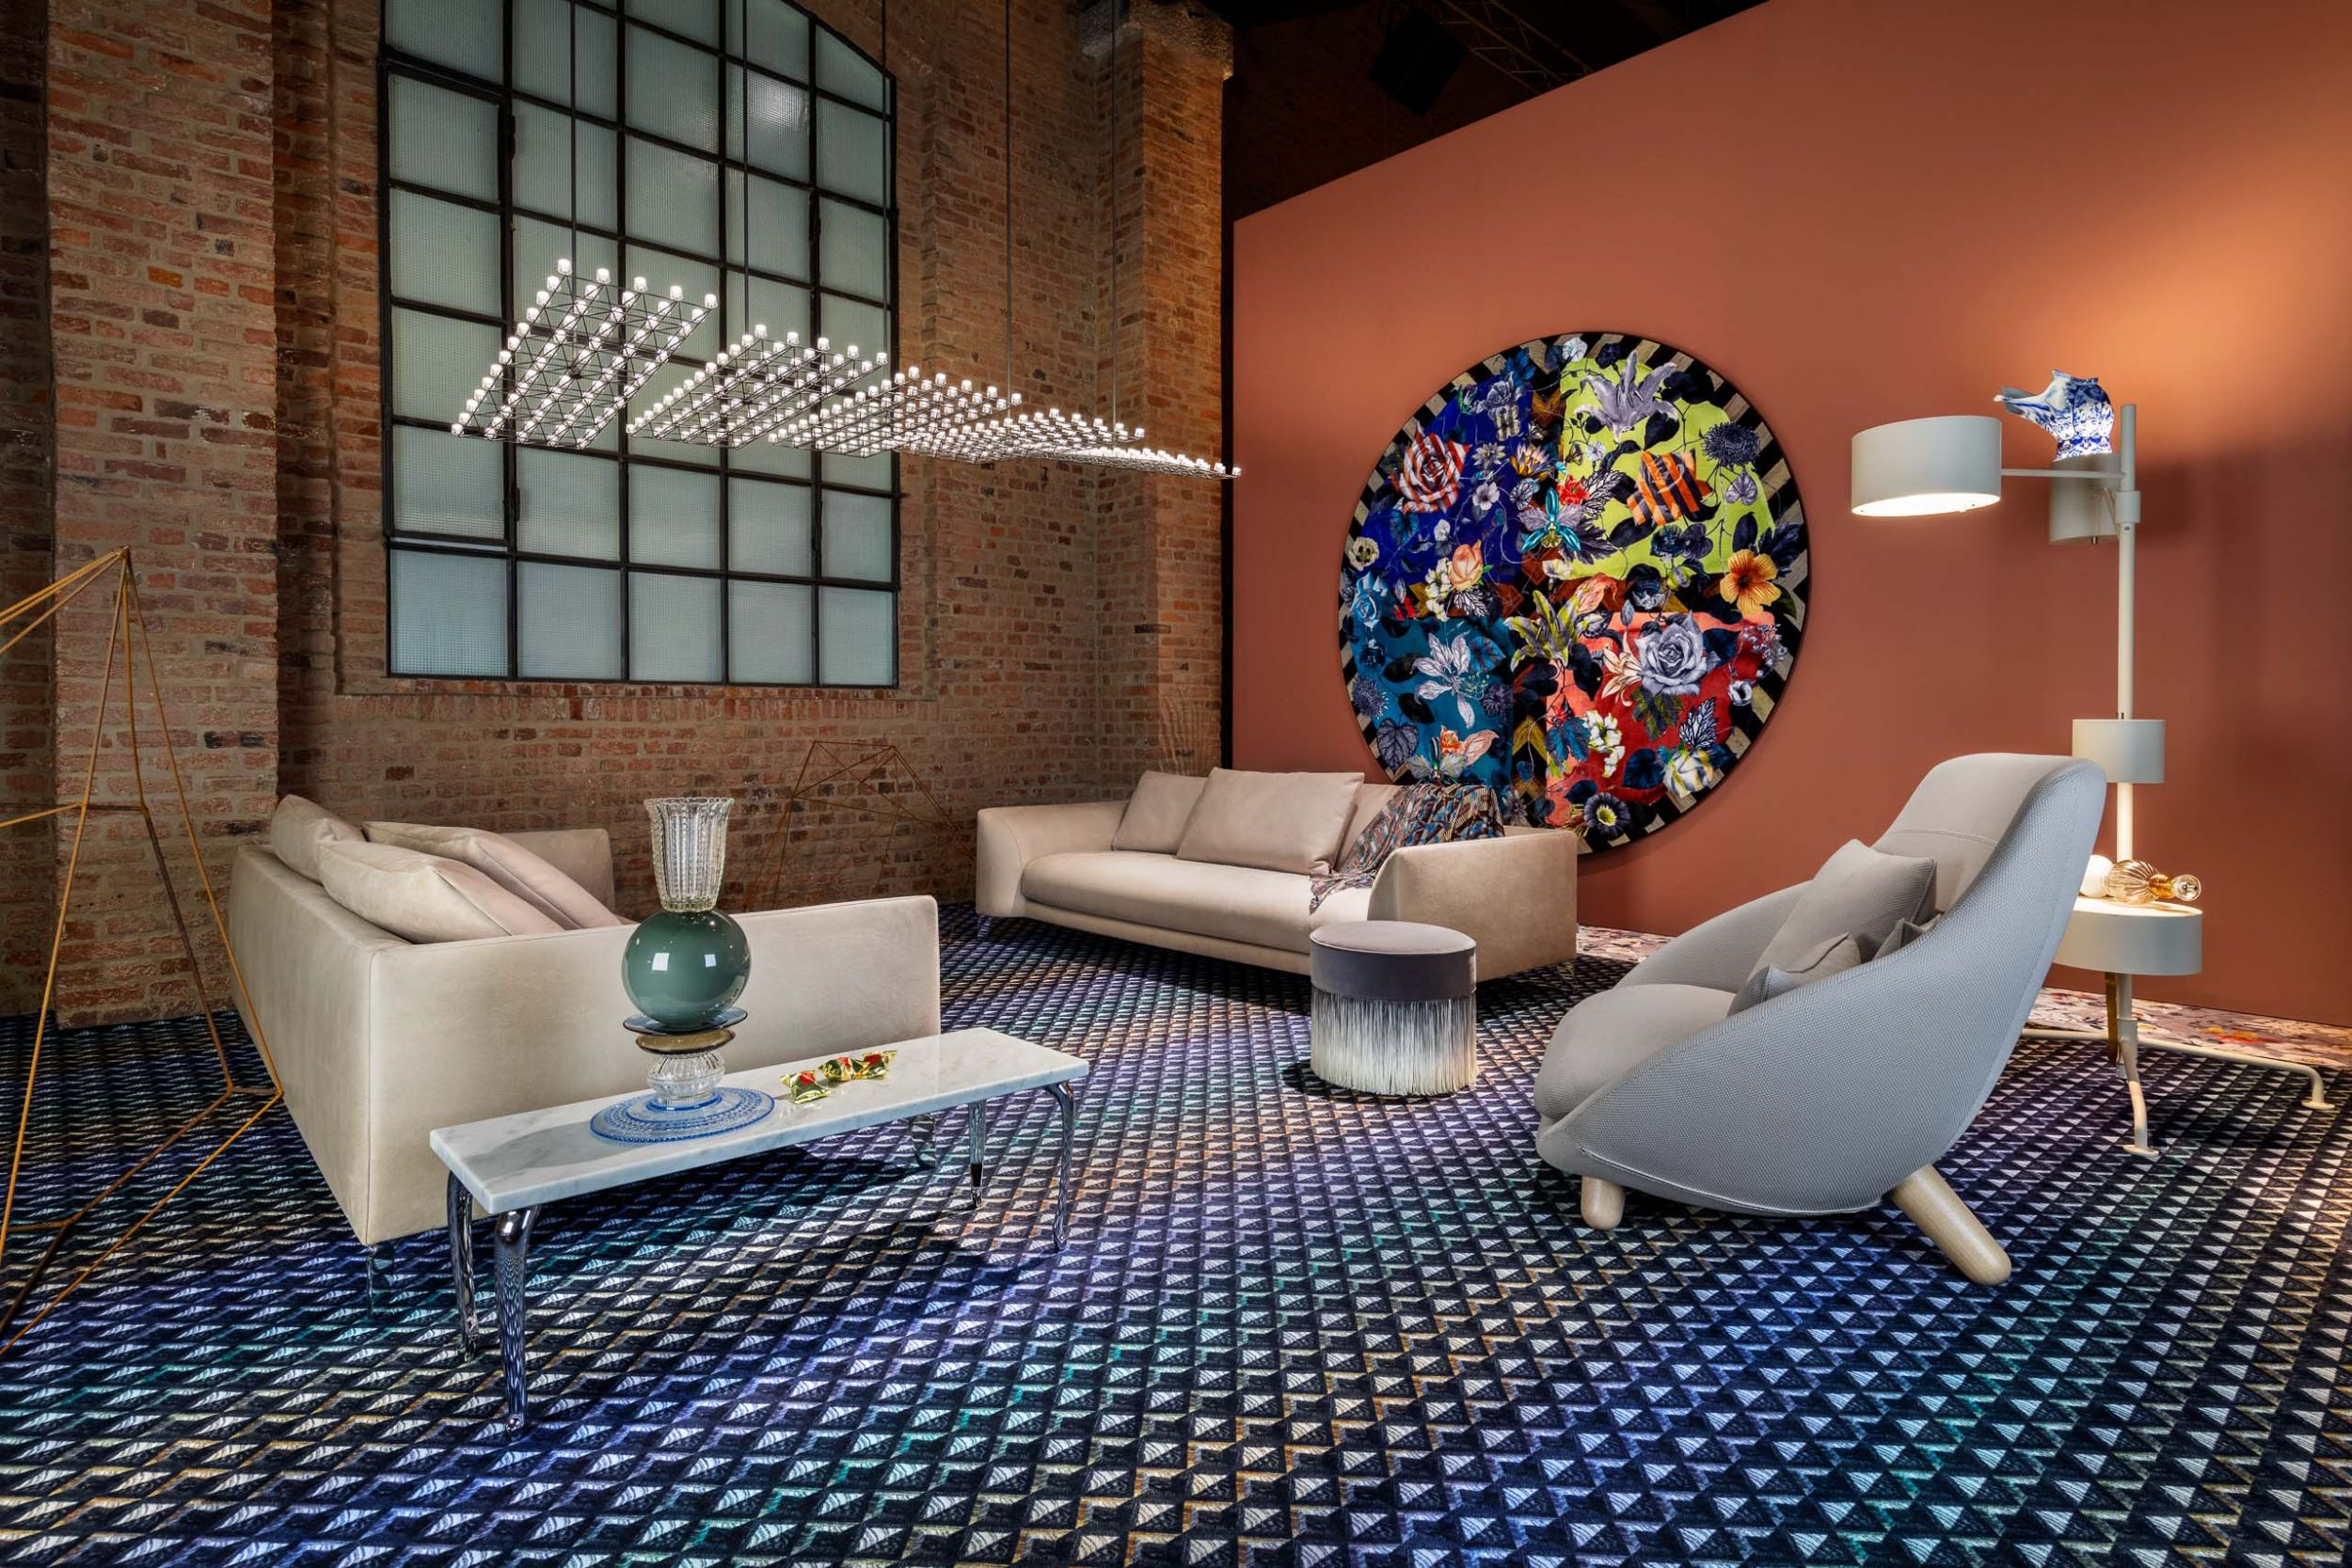 moooi_milan_2016-0696_by_peer_lindgreen-for-web-moooi